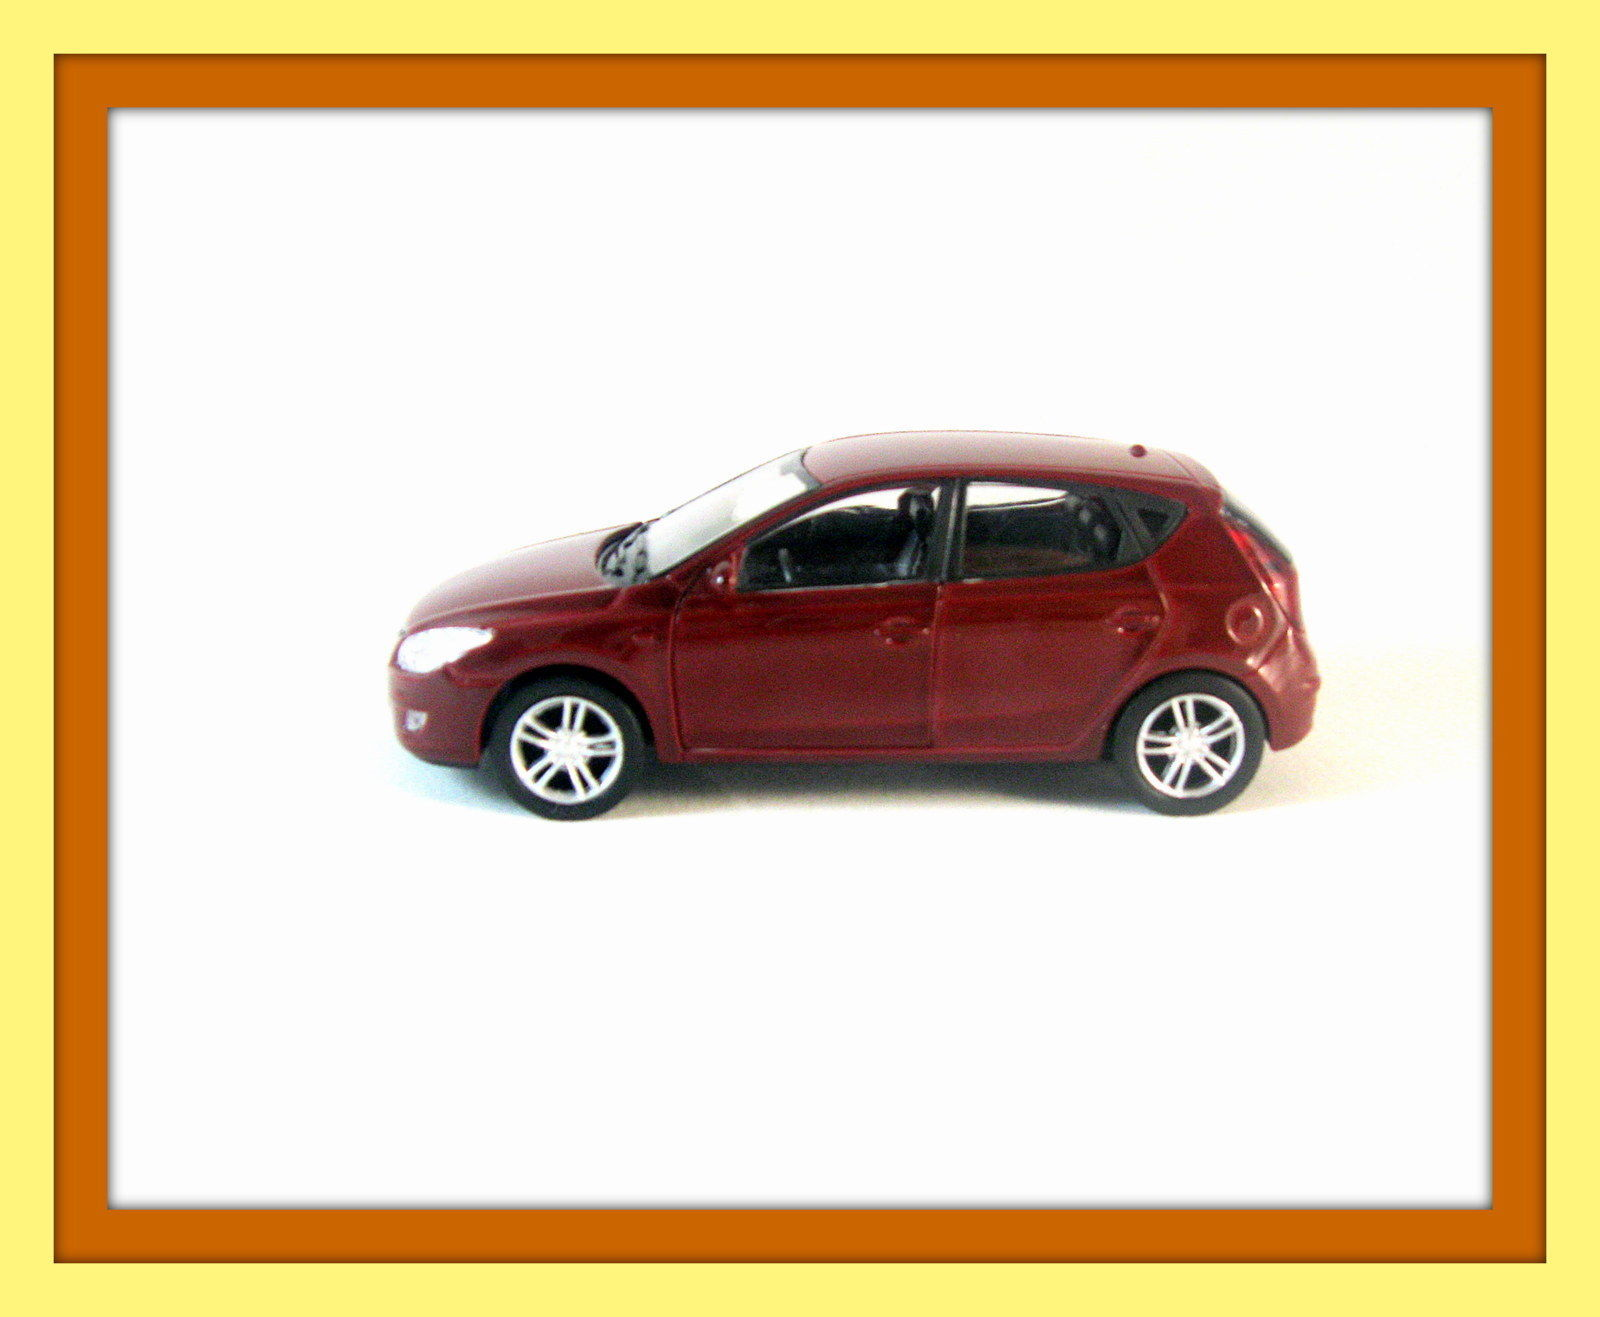 hyundai i 30 bordeaux welly 1 38 diecast and 50 similar items. Black Bedroom Furniture Sets. Home Design Ideas